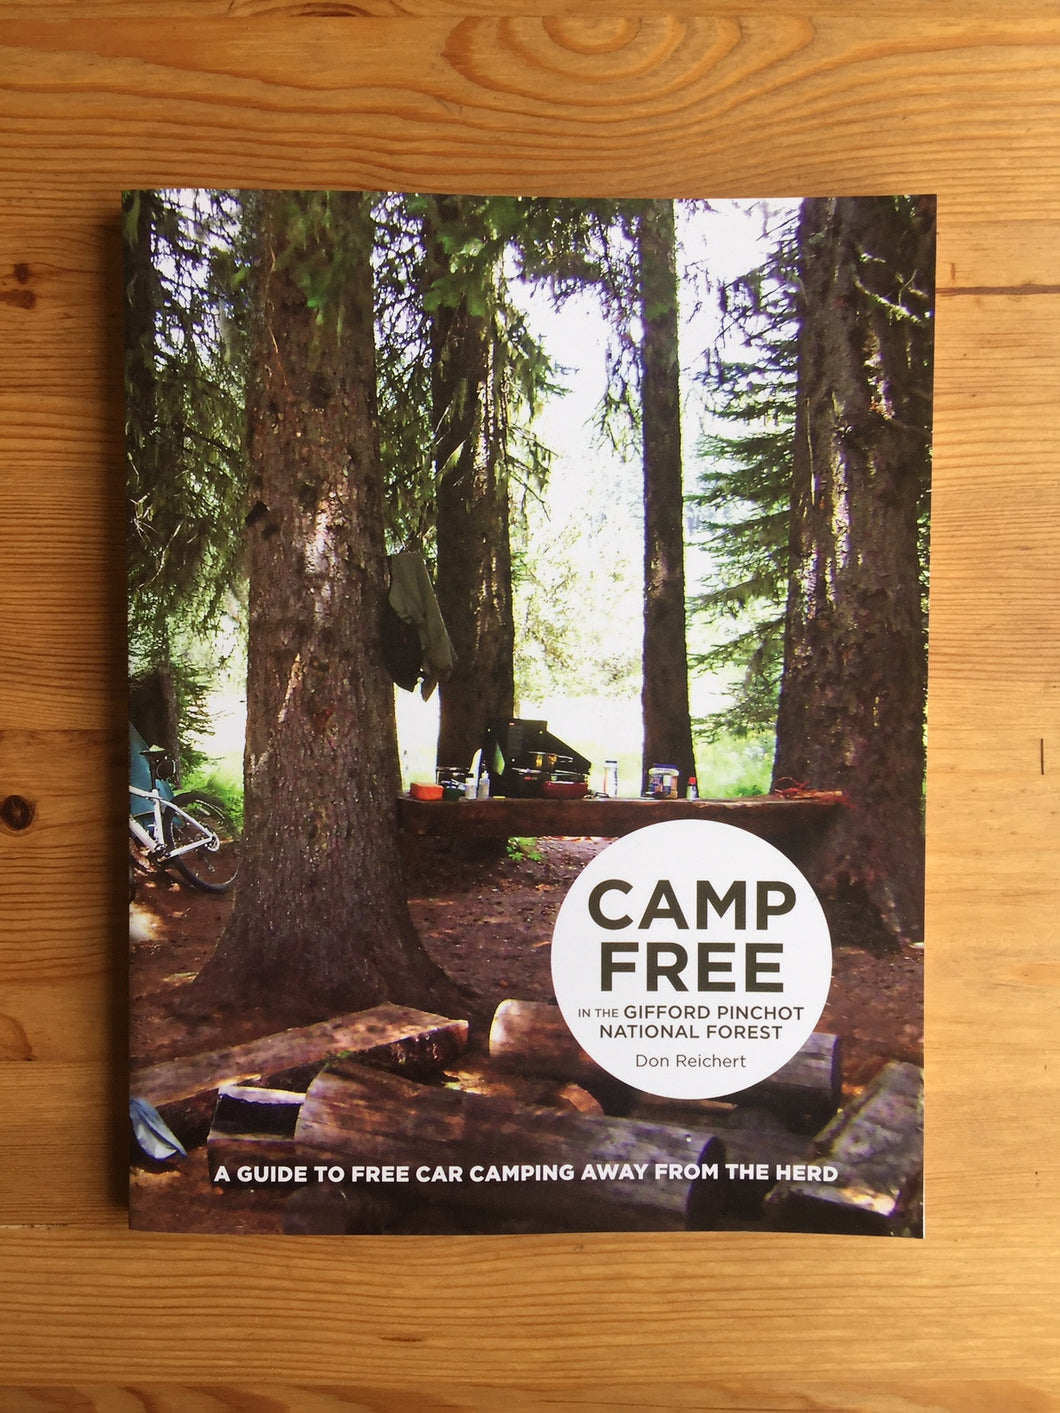 Camp Free in the Gifford Pinchot National Forest Book by Don Reichert